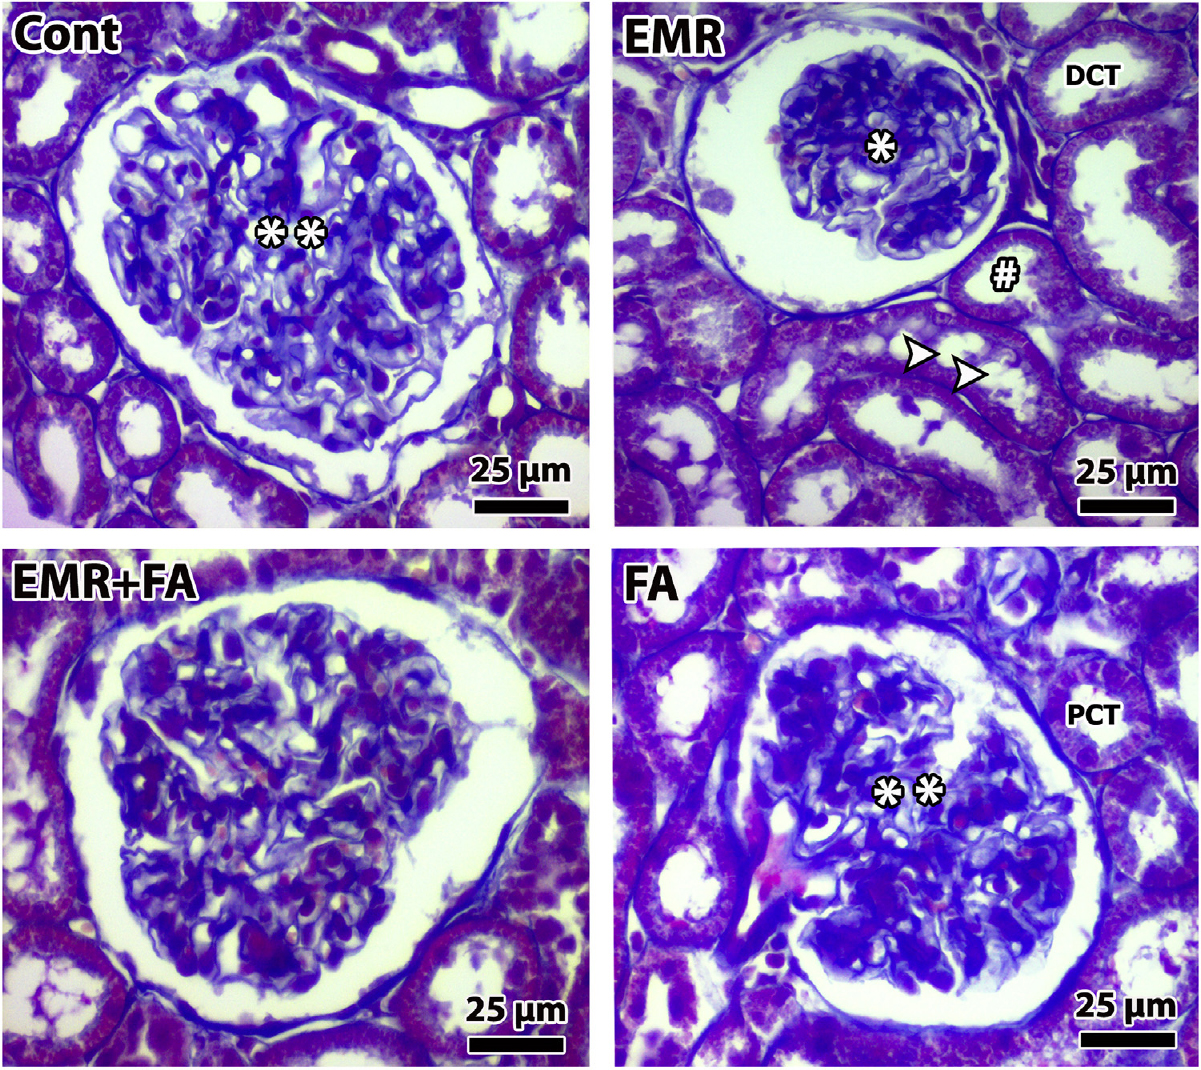 Effects Of Folic Acid On Rat Kidney Exposed To 900 Mhz